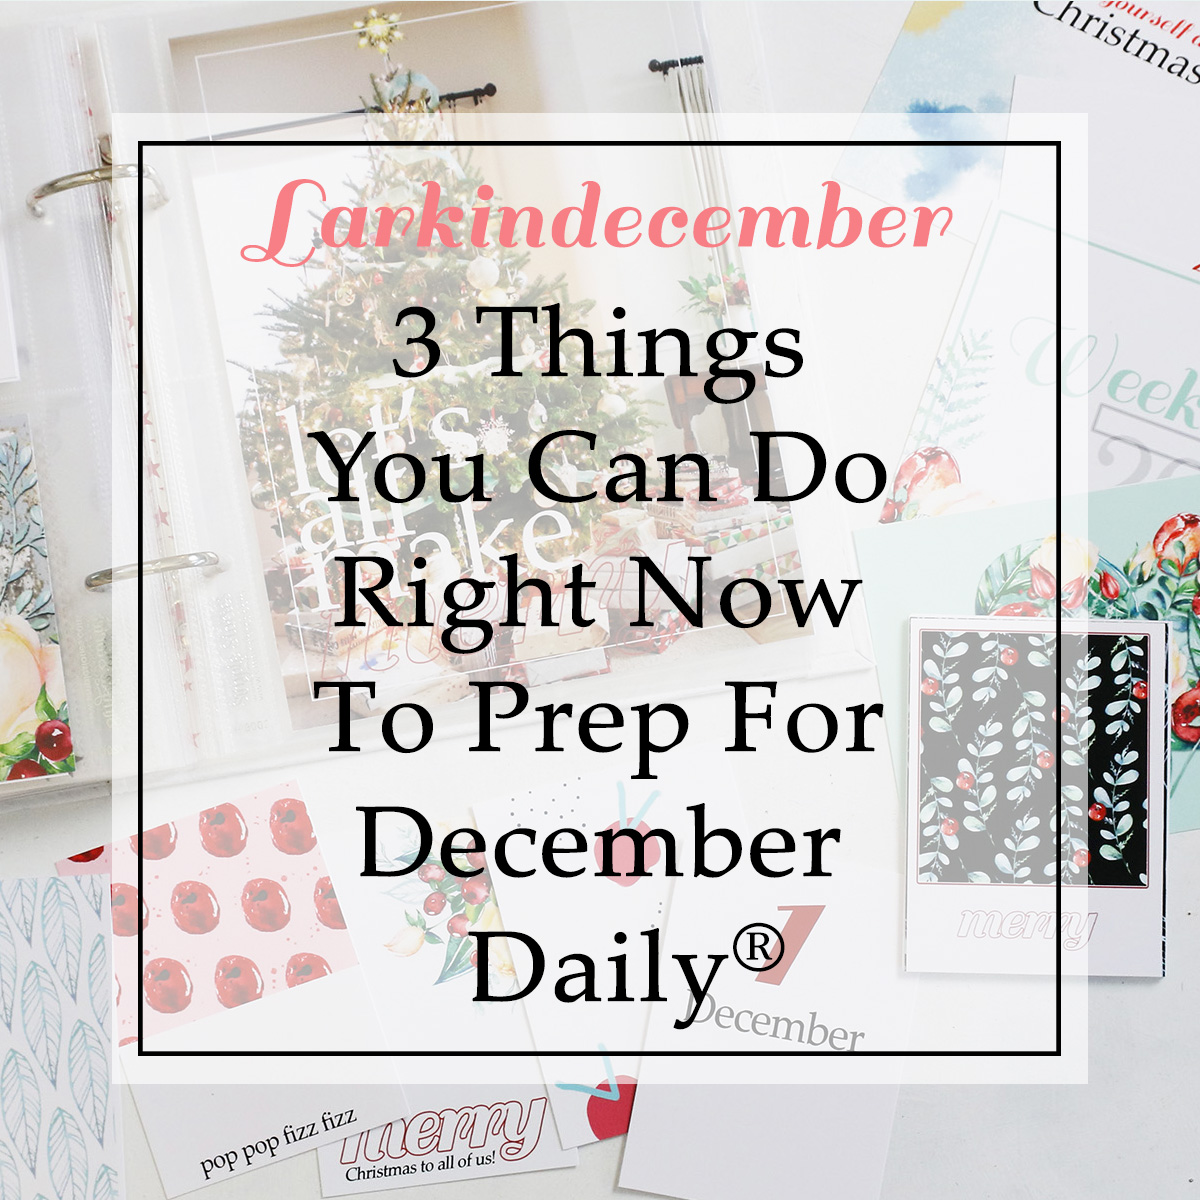 Three Things You Can Do Right Now To Prep For December Daily!